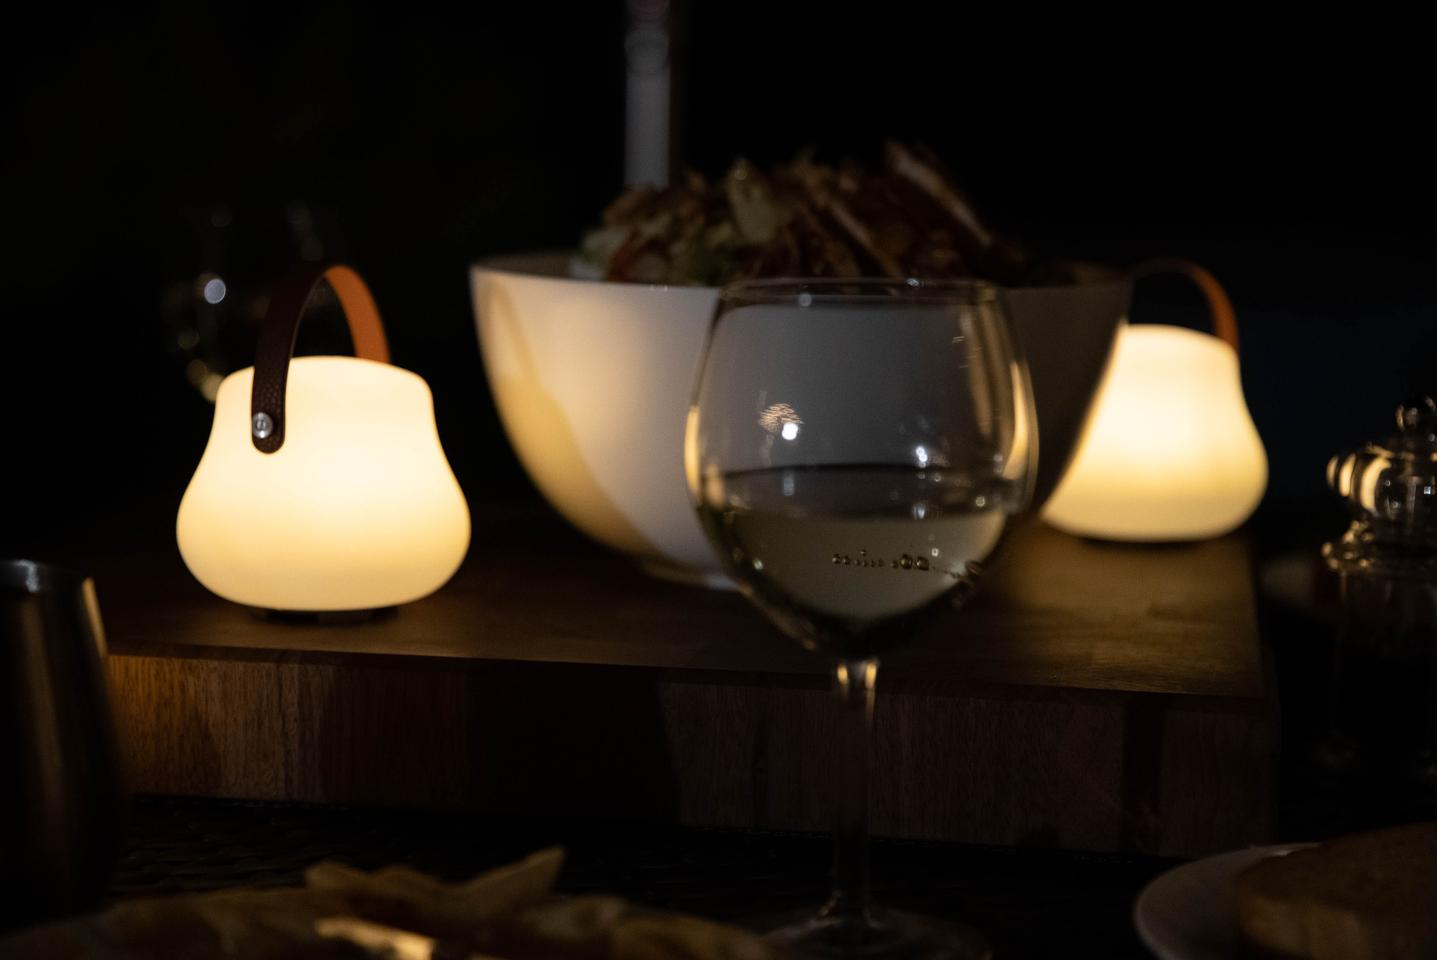 The Nordic D'Luxx Pro is a planter, a lantern and a Bluetooth speaker all in one elegant package